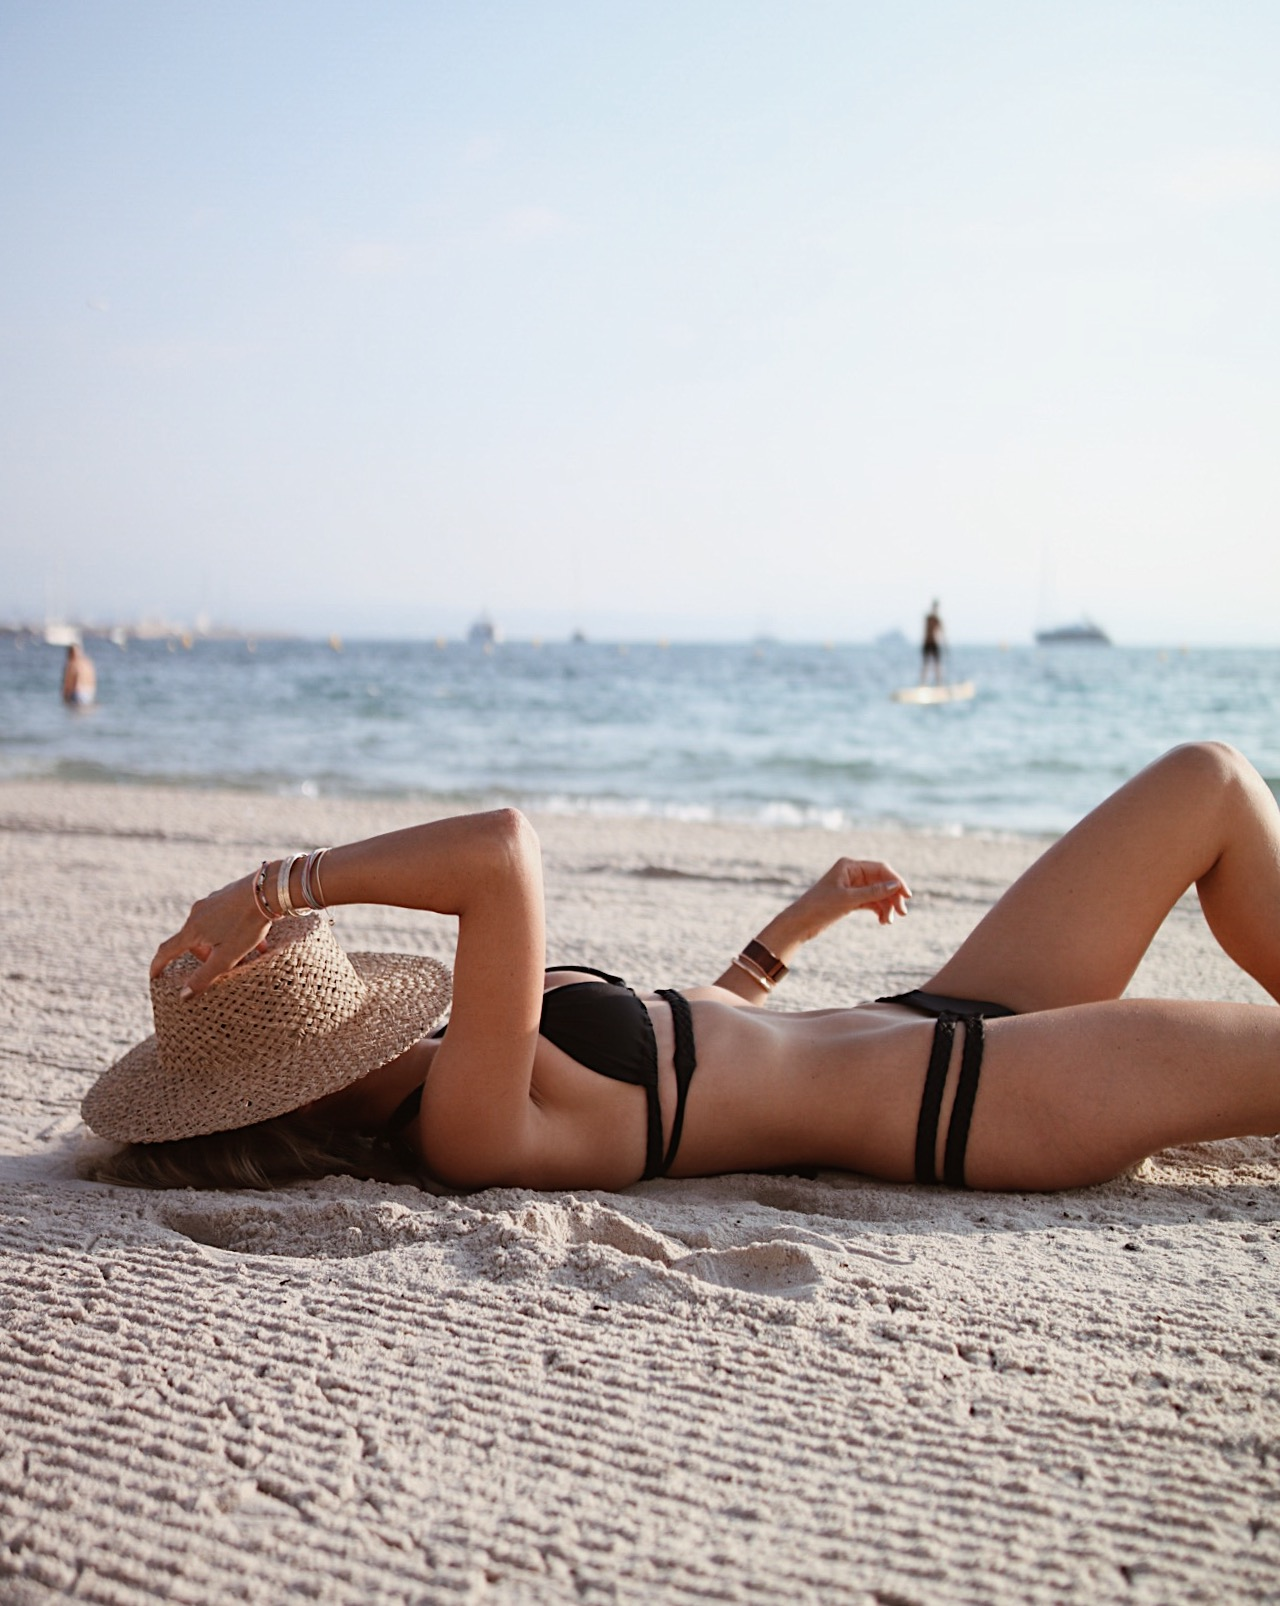 BIKINI VITAMINE A, conseil peau bronzée, bikini body, black bikini, bronzage doré, beach vibes, bikini life, chapeau paille lack of colors, wave ring james michelle jewelry